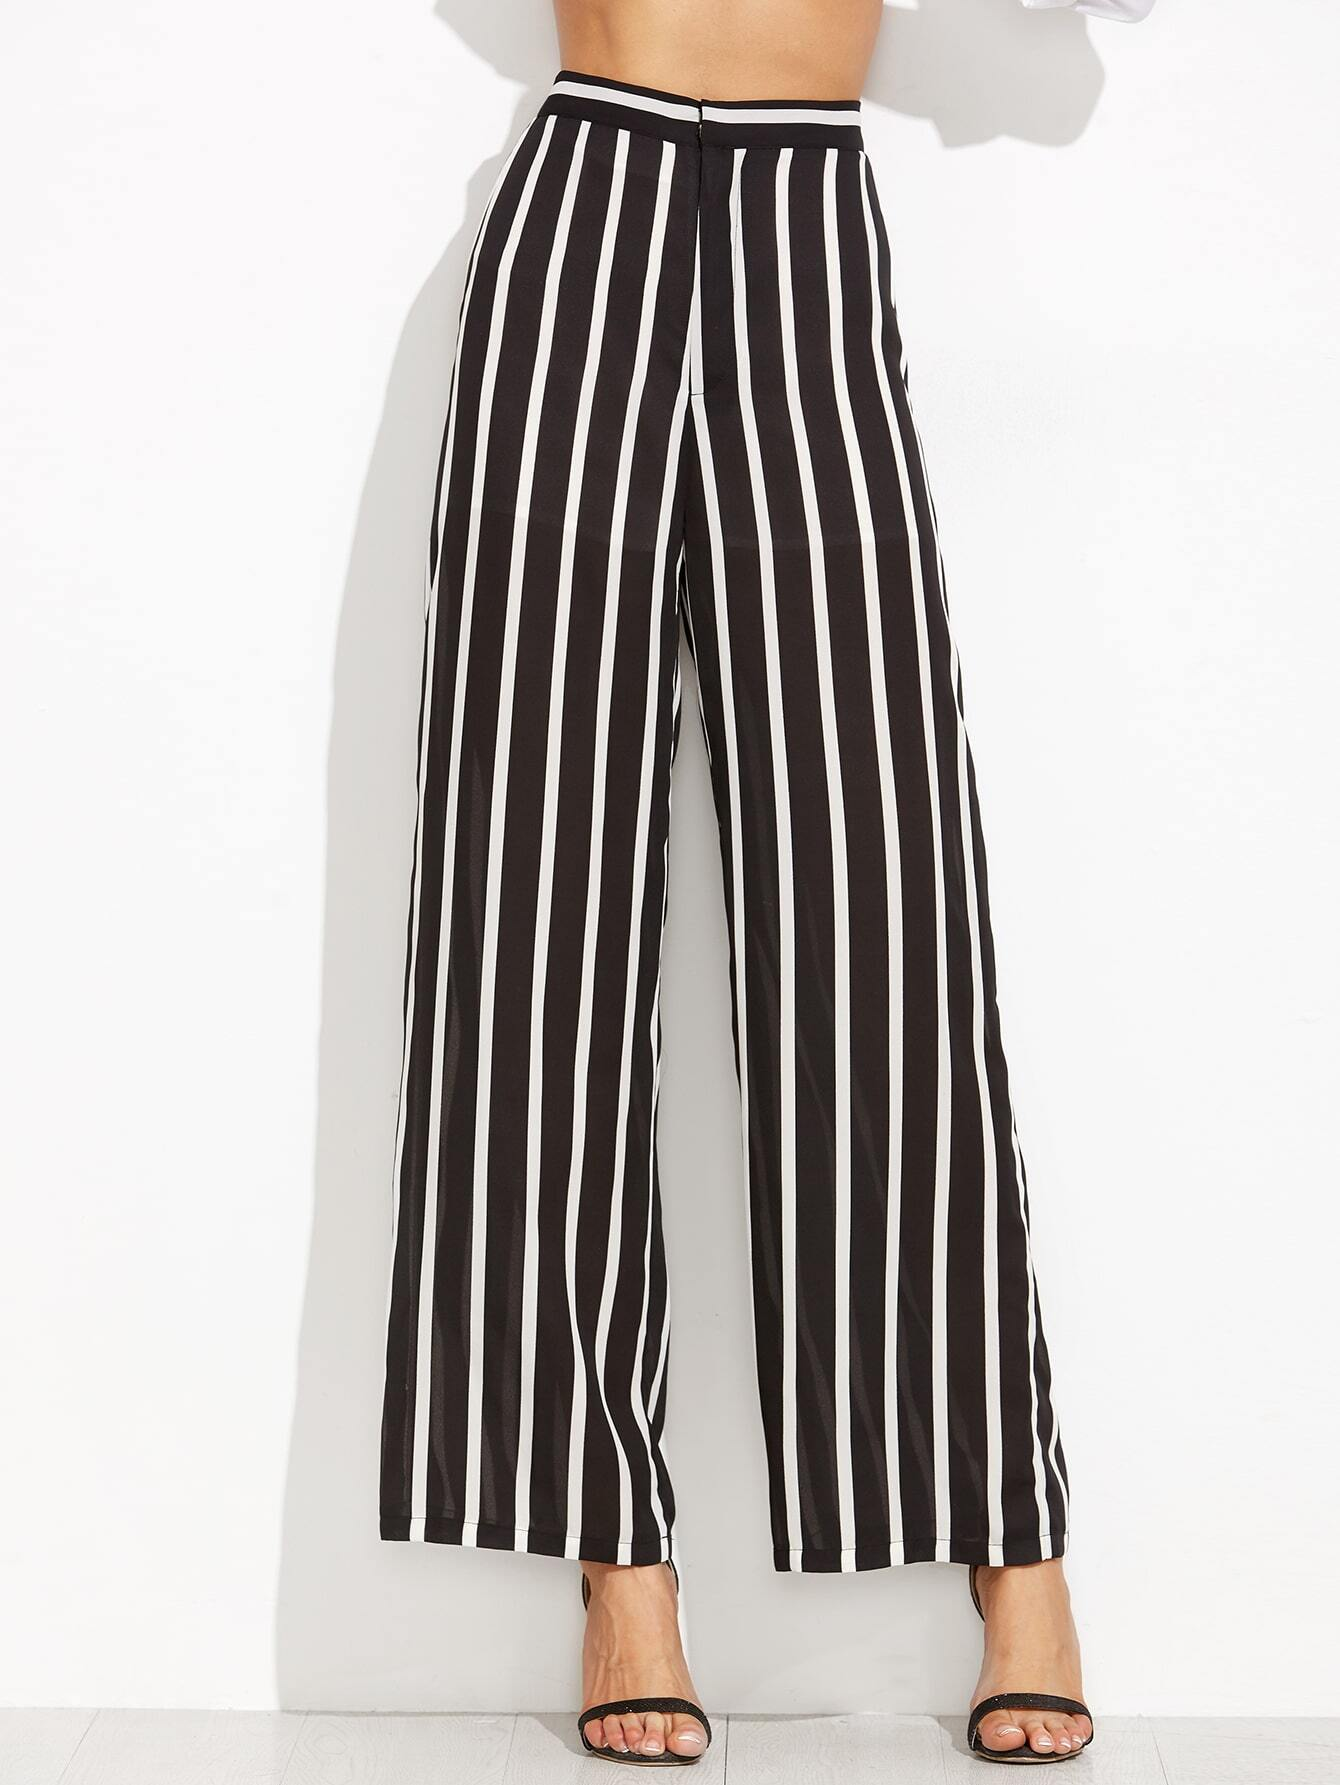 Wide Leg Trousers Styles Found Whether you're feelin' the tailored look or want to rock a pair of palazzo pants, we've got you covered when it comes to wide leg trousers.